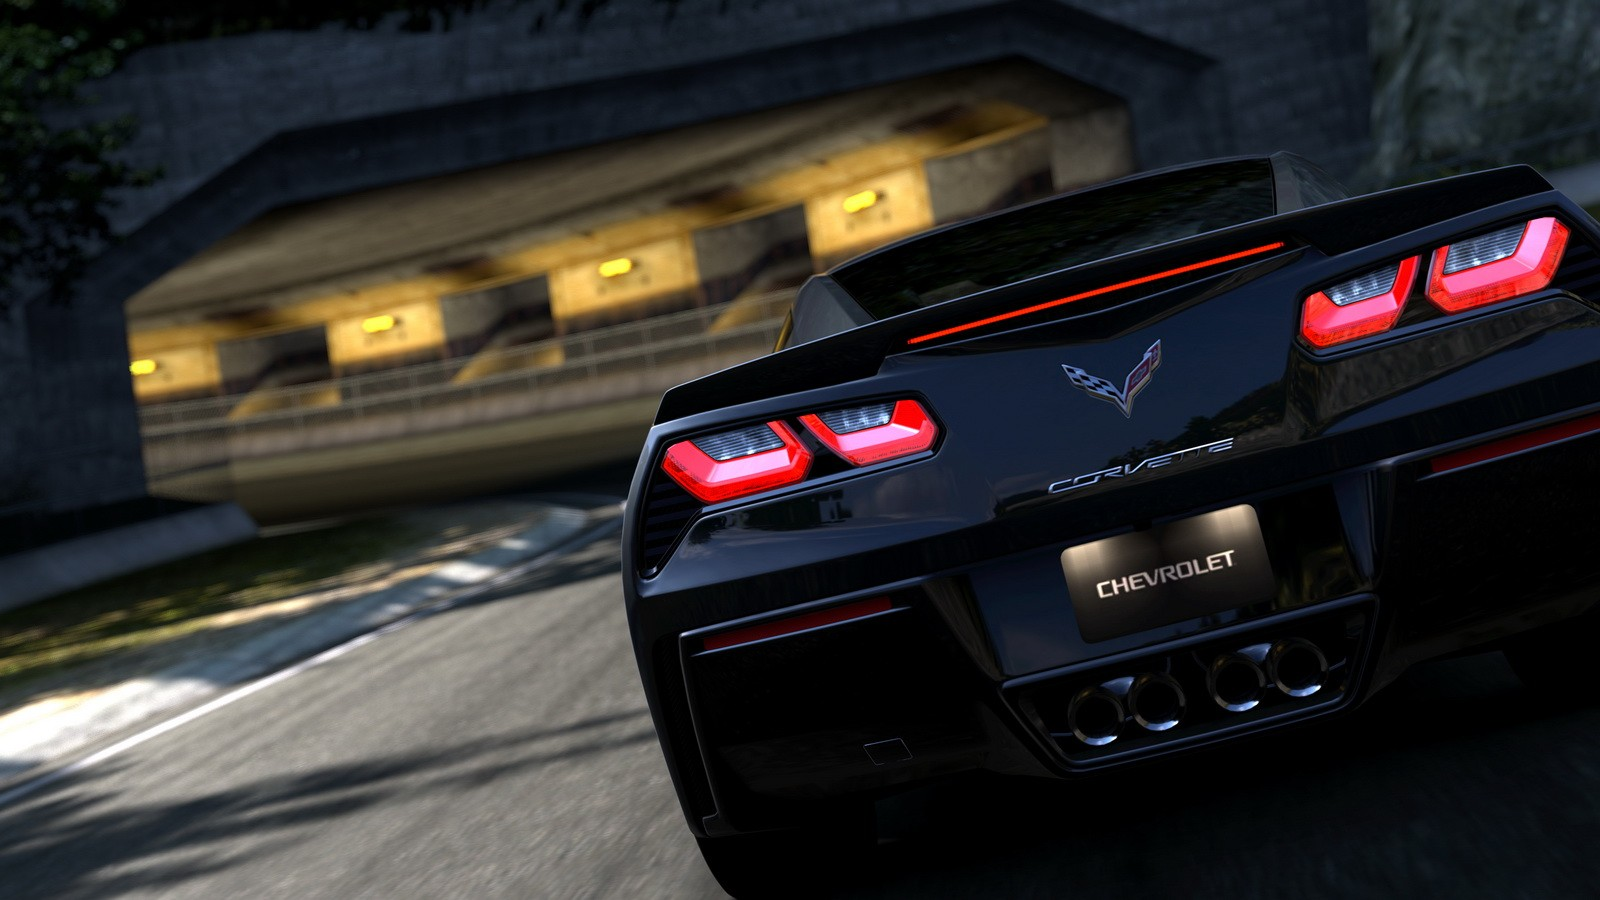 Chevrolet Corvette Wallpaper and Background 1600x900 ID384712